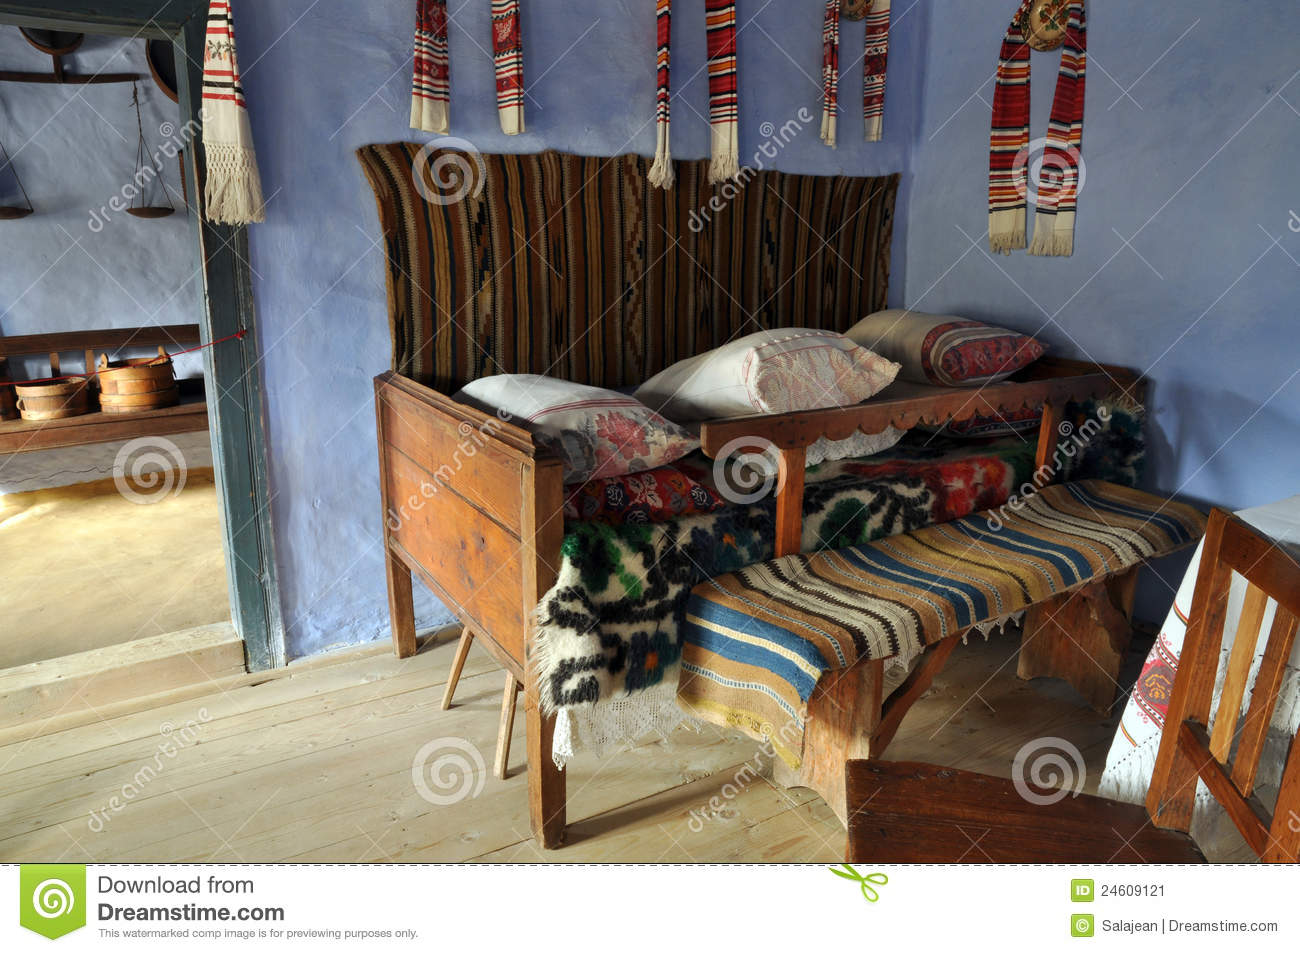 Traditional romanian house interior stock image image 24609121 - Romanian peasant houses ...